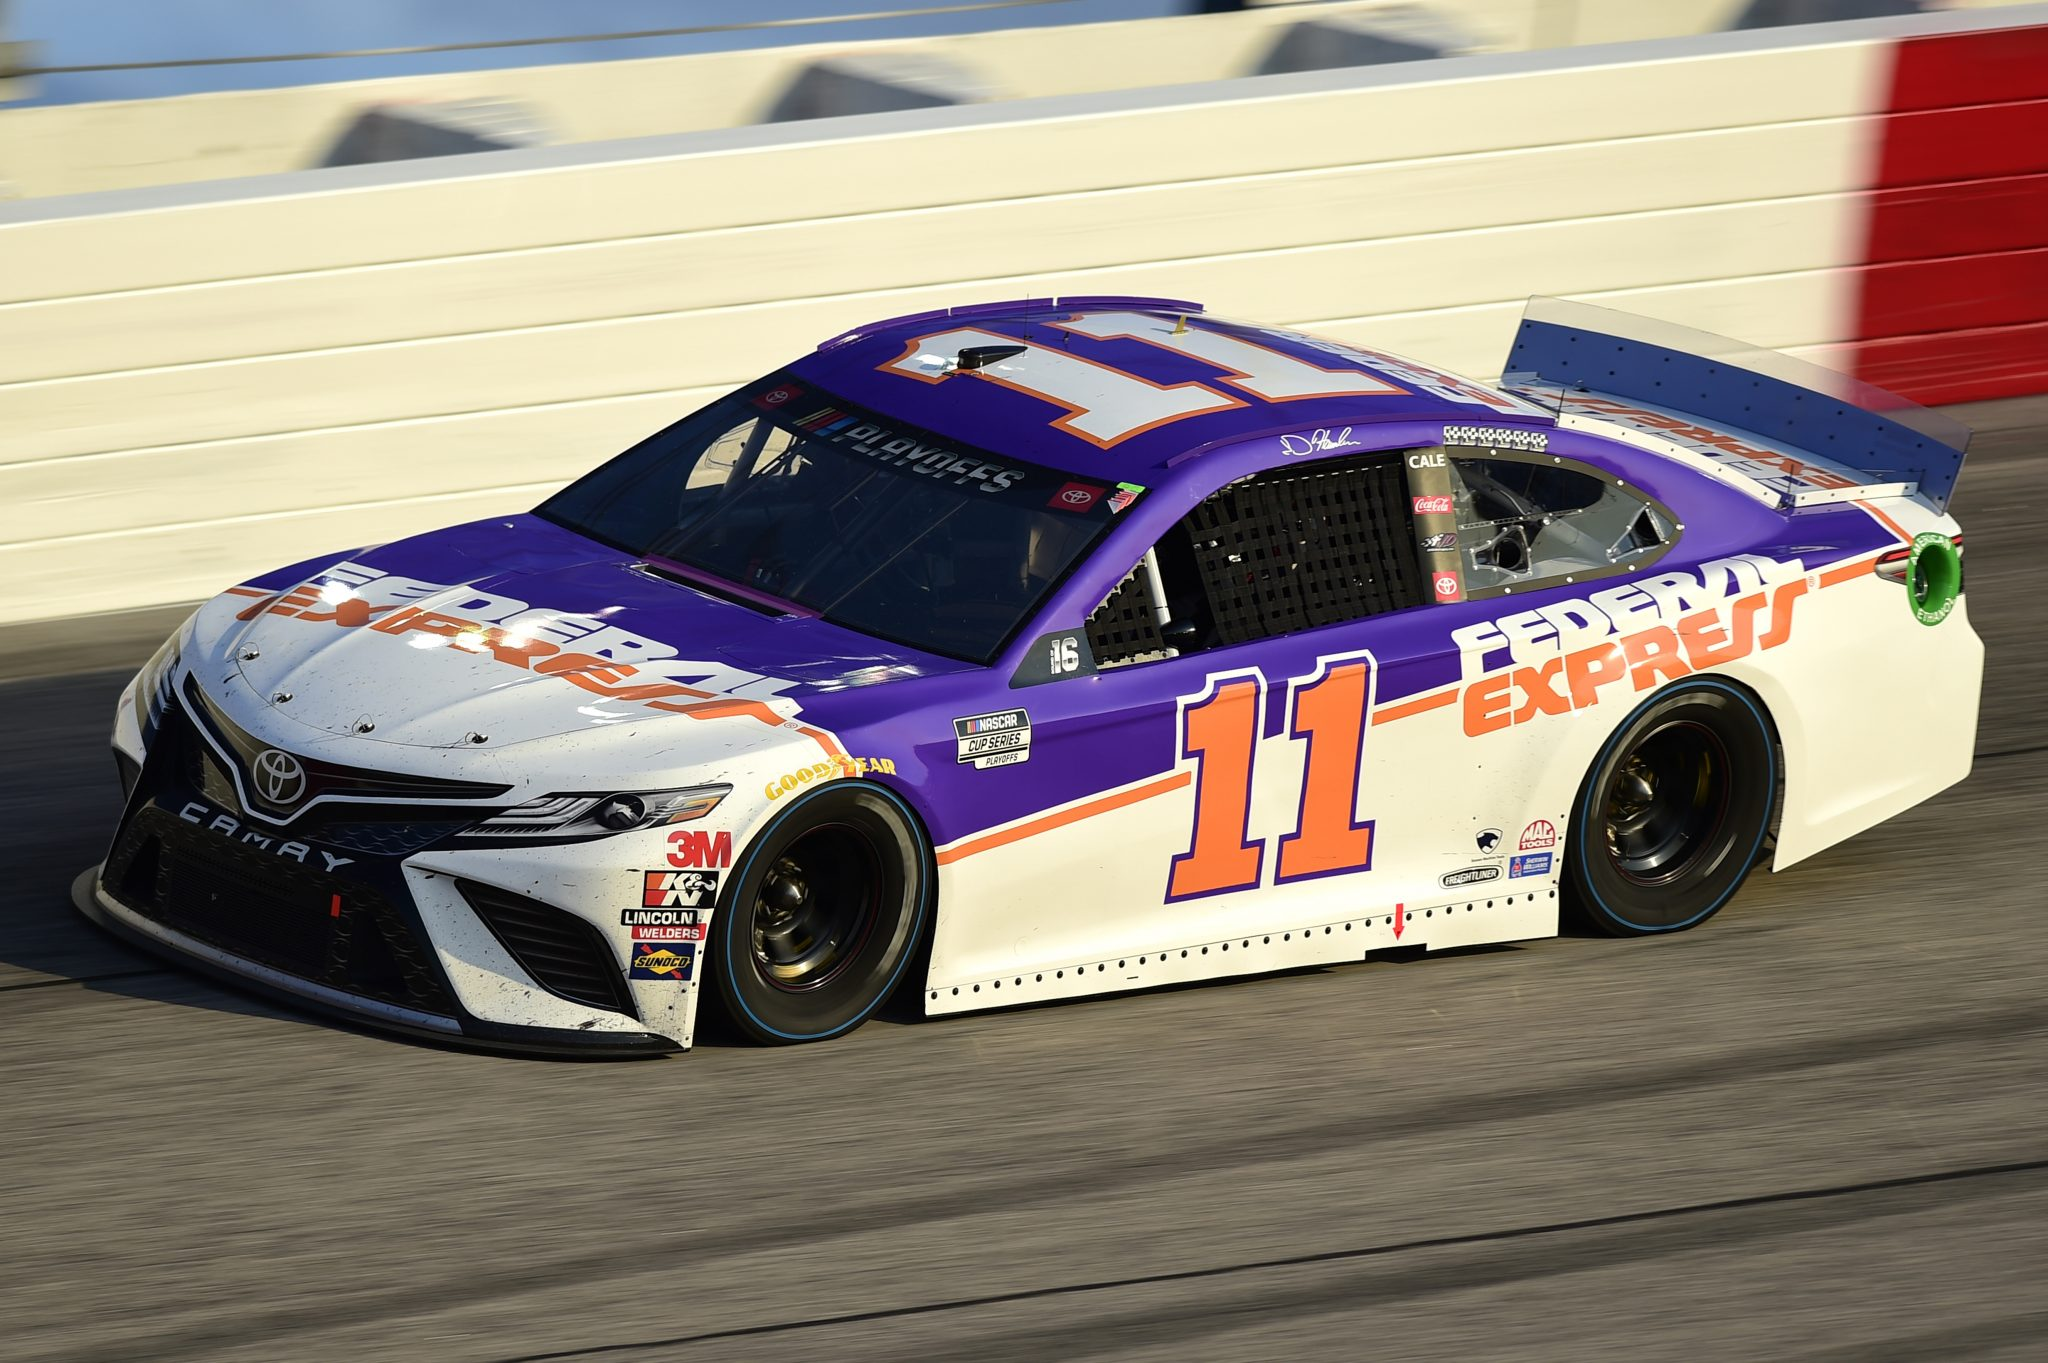 DARLINGTON, SOUTH CAROLINA - SEPTEMBER 06: Denny Hamlin, driver of the #11 Federal Express Toyota, drives during the NASCAR Cup Series Cook Out Southern 500 at Darlington Raceway on September 06, 2020 in Darlington, South Carolina. (Photo by Jared C. Tilton/Getty Images) | Getty Images